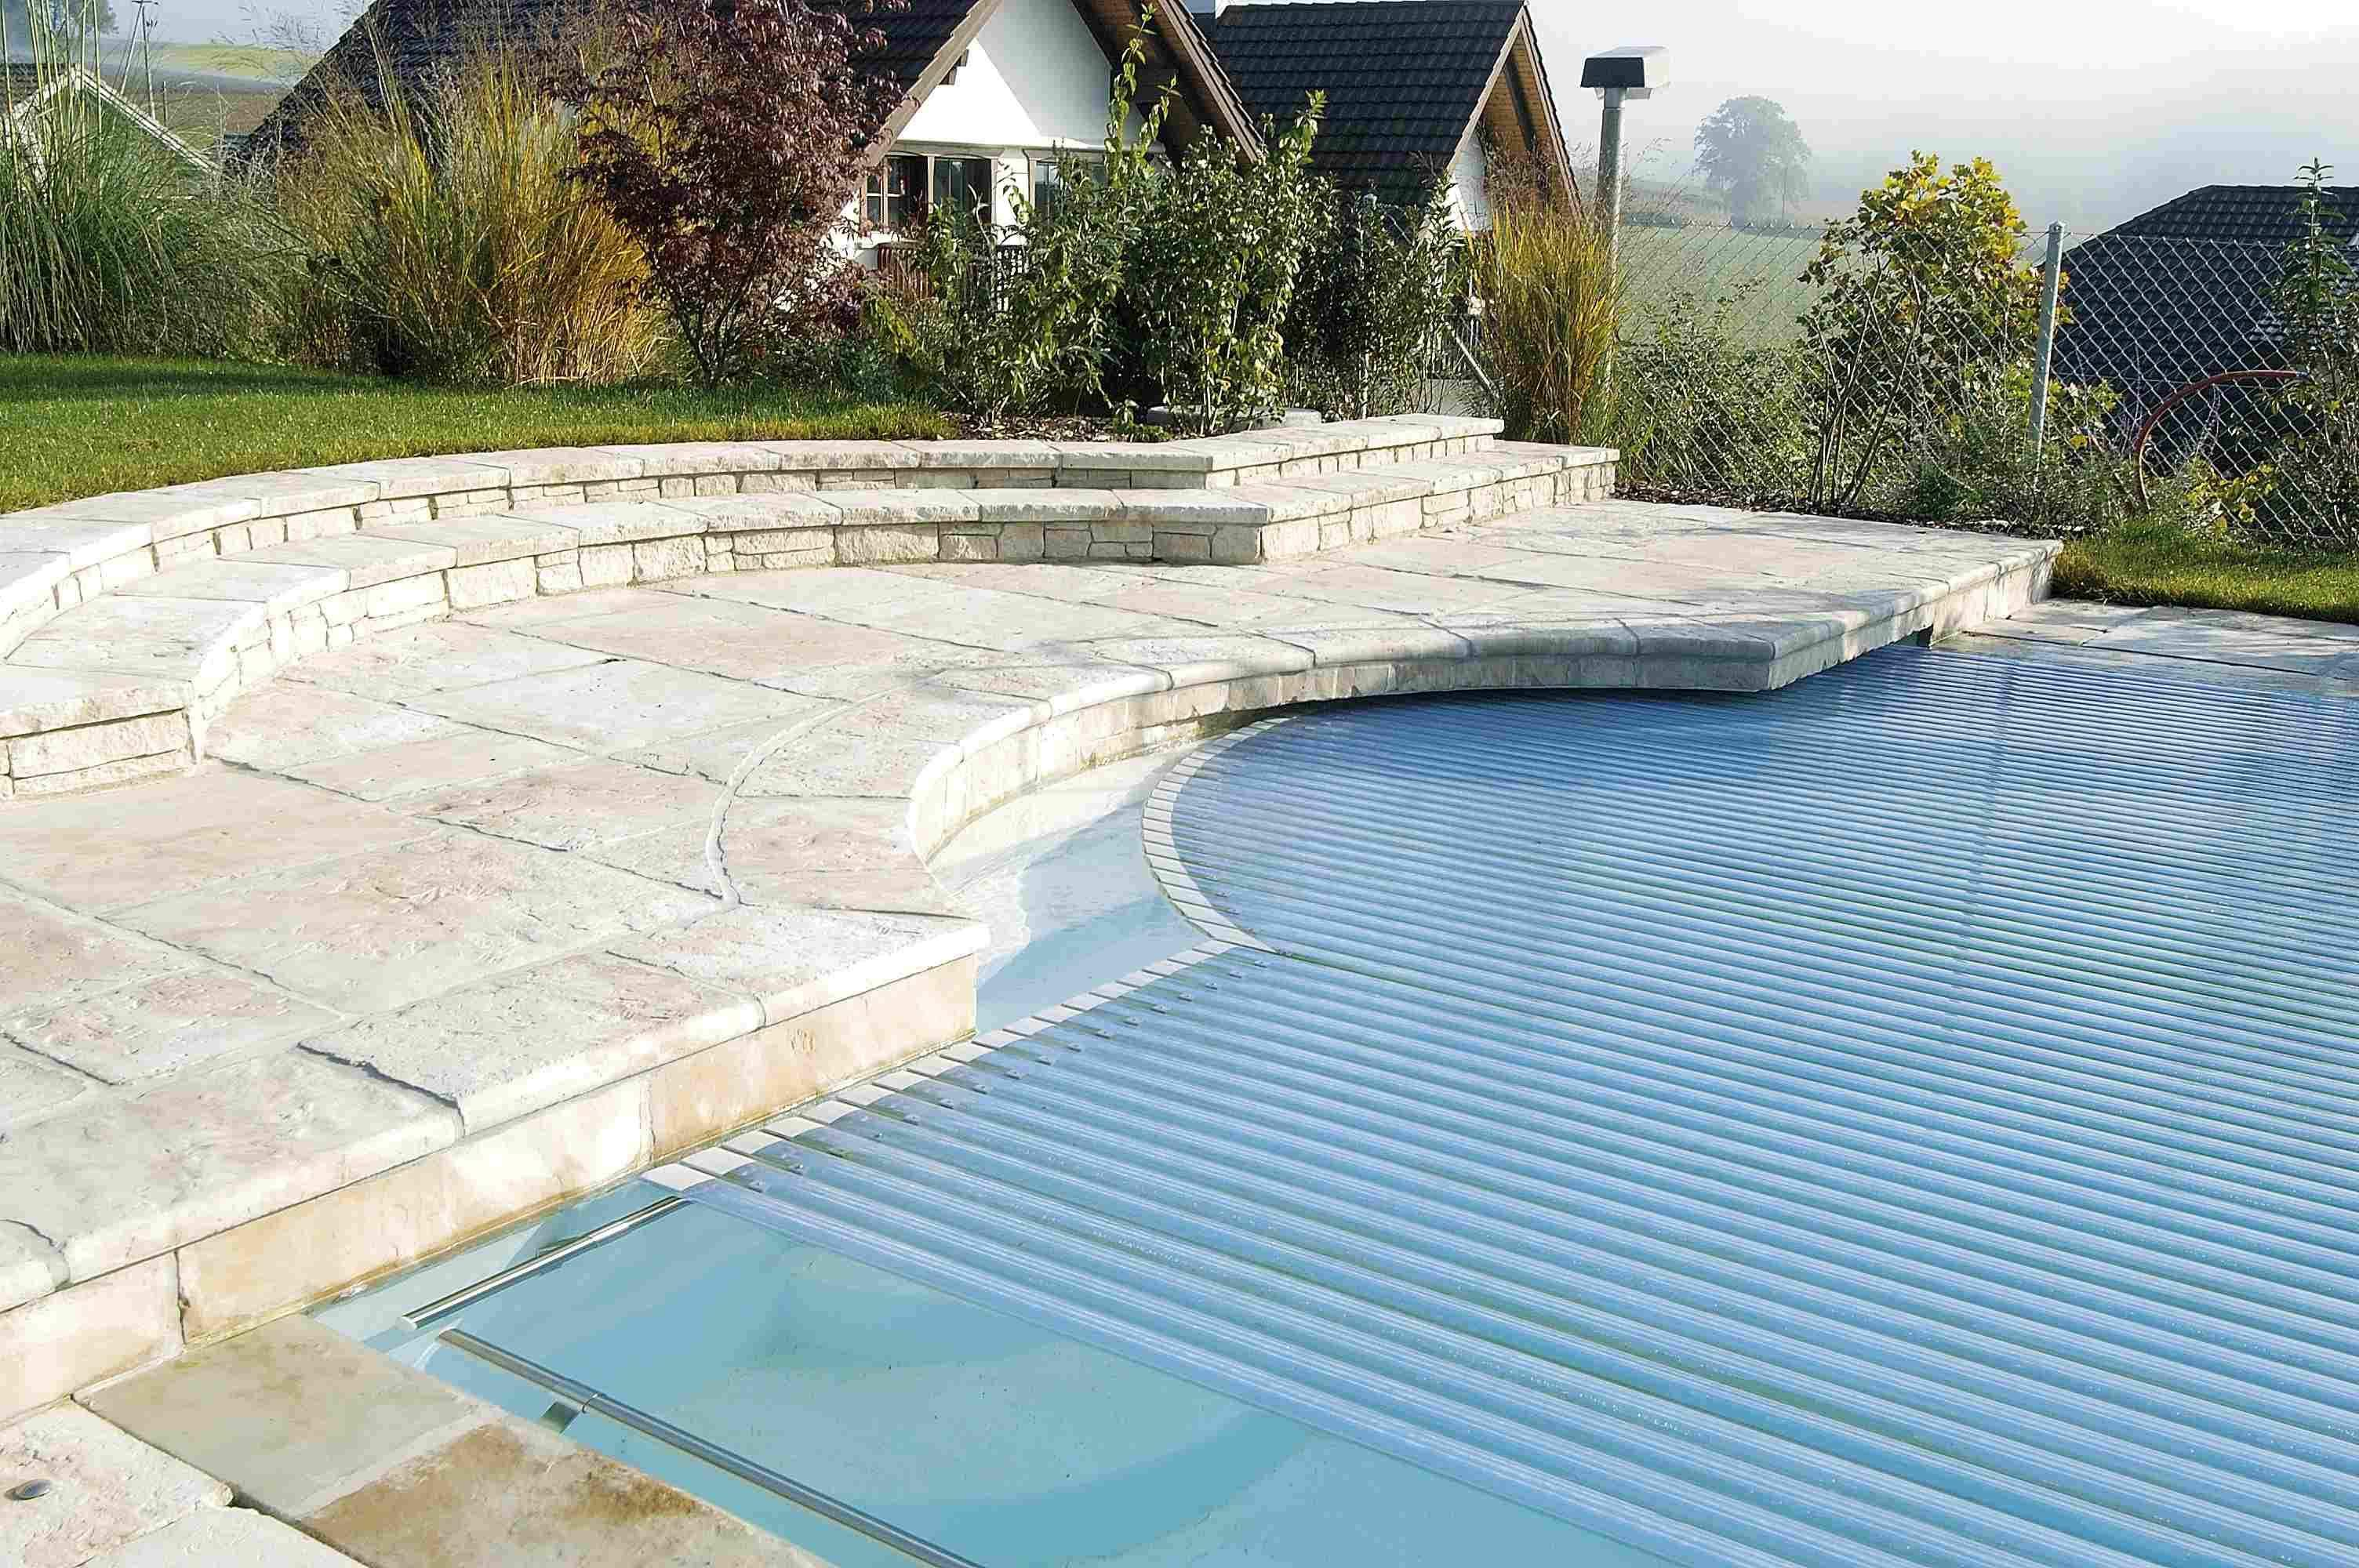 Automatic Pool Cover In Ground Automatic Rigid Slated Pool Cover Covertech Grando 1 Pool